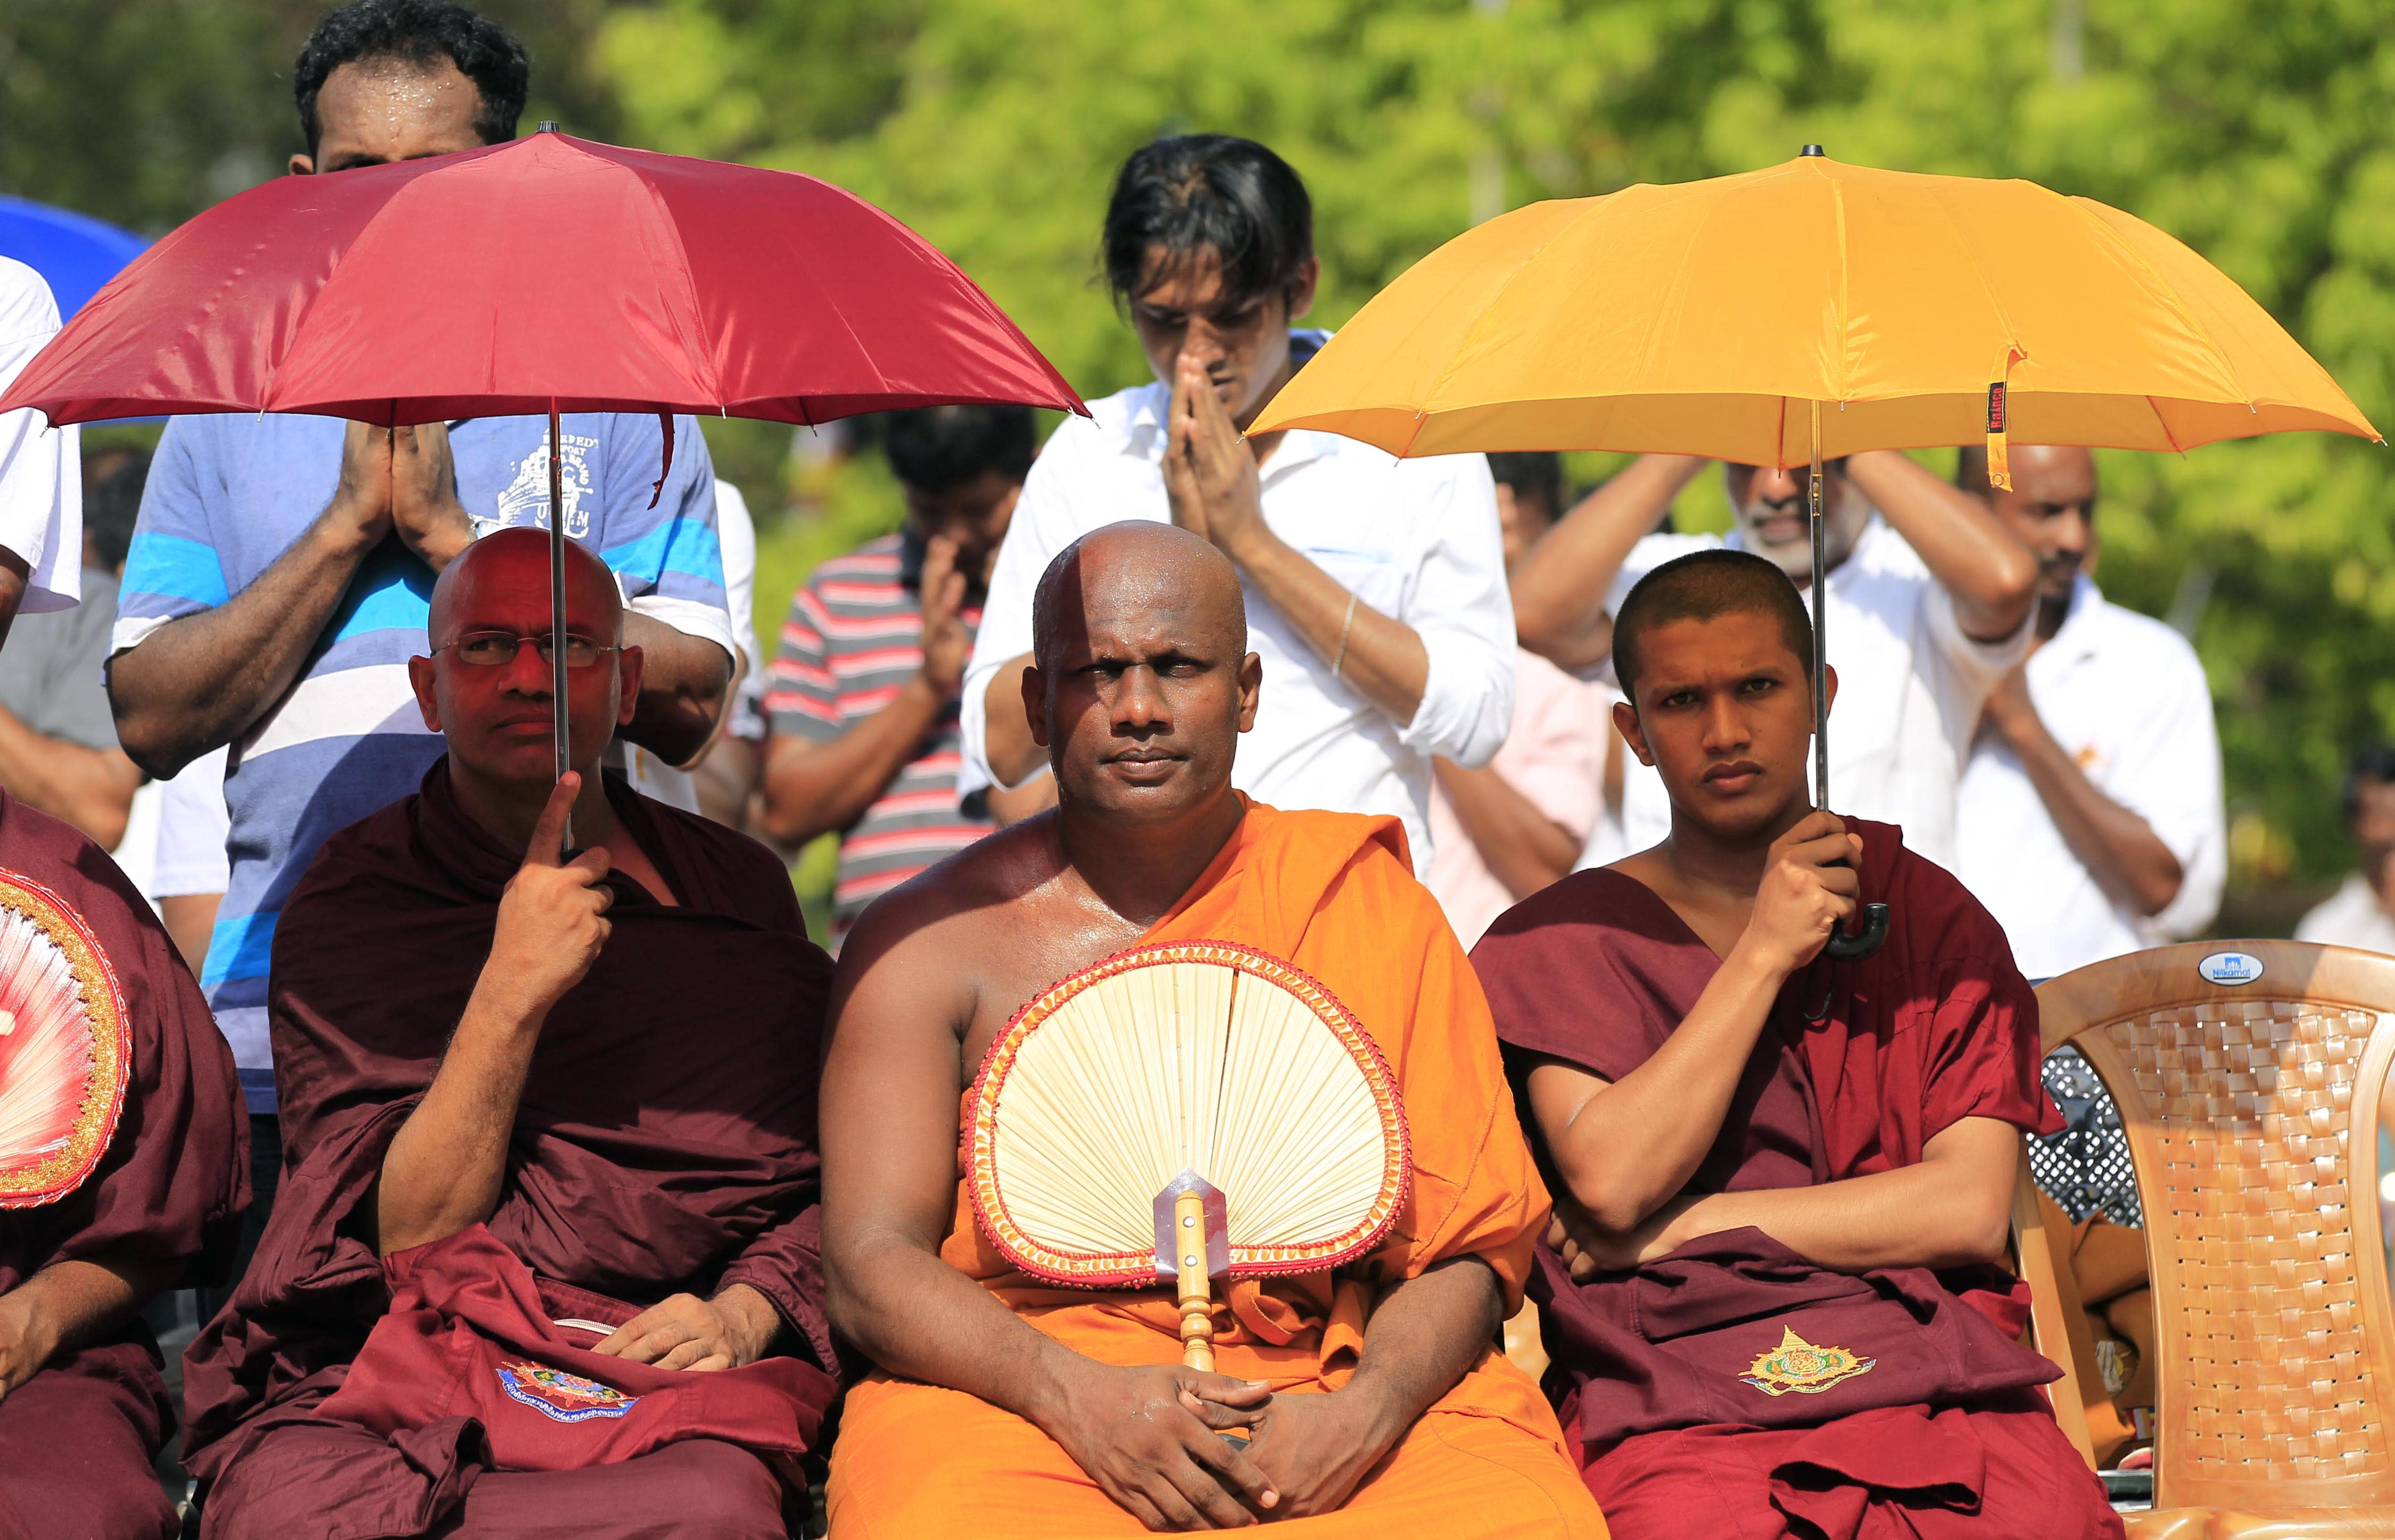 In this Sunday, March 31, 2013 photo, Sri Lankan Buddhist monks of Jathika Hela Urumaya, or National Heritage, a coalition political party of the Sri Lanka's ruling party take part in a convention in Colombo, Sri Lanka. The escalation in attacks and anti-Muslim rhetoric has caused fears of a new wave of ethnic violence in the country still recovering from a quarter-century civil war between the government, controlled by ethnic Sinhalese Buddhists, and a mainly Hindu ethnic Tamil rebel group. (AP Photo/Eranga Jayawardena)